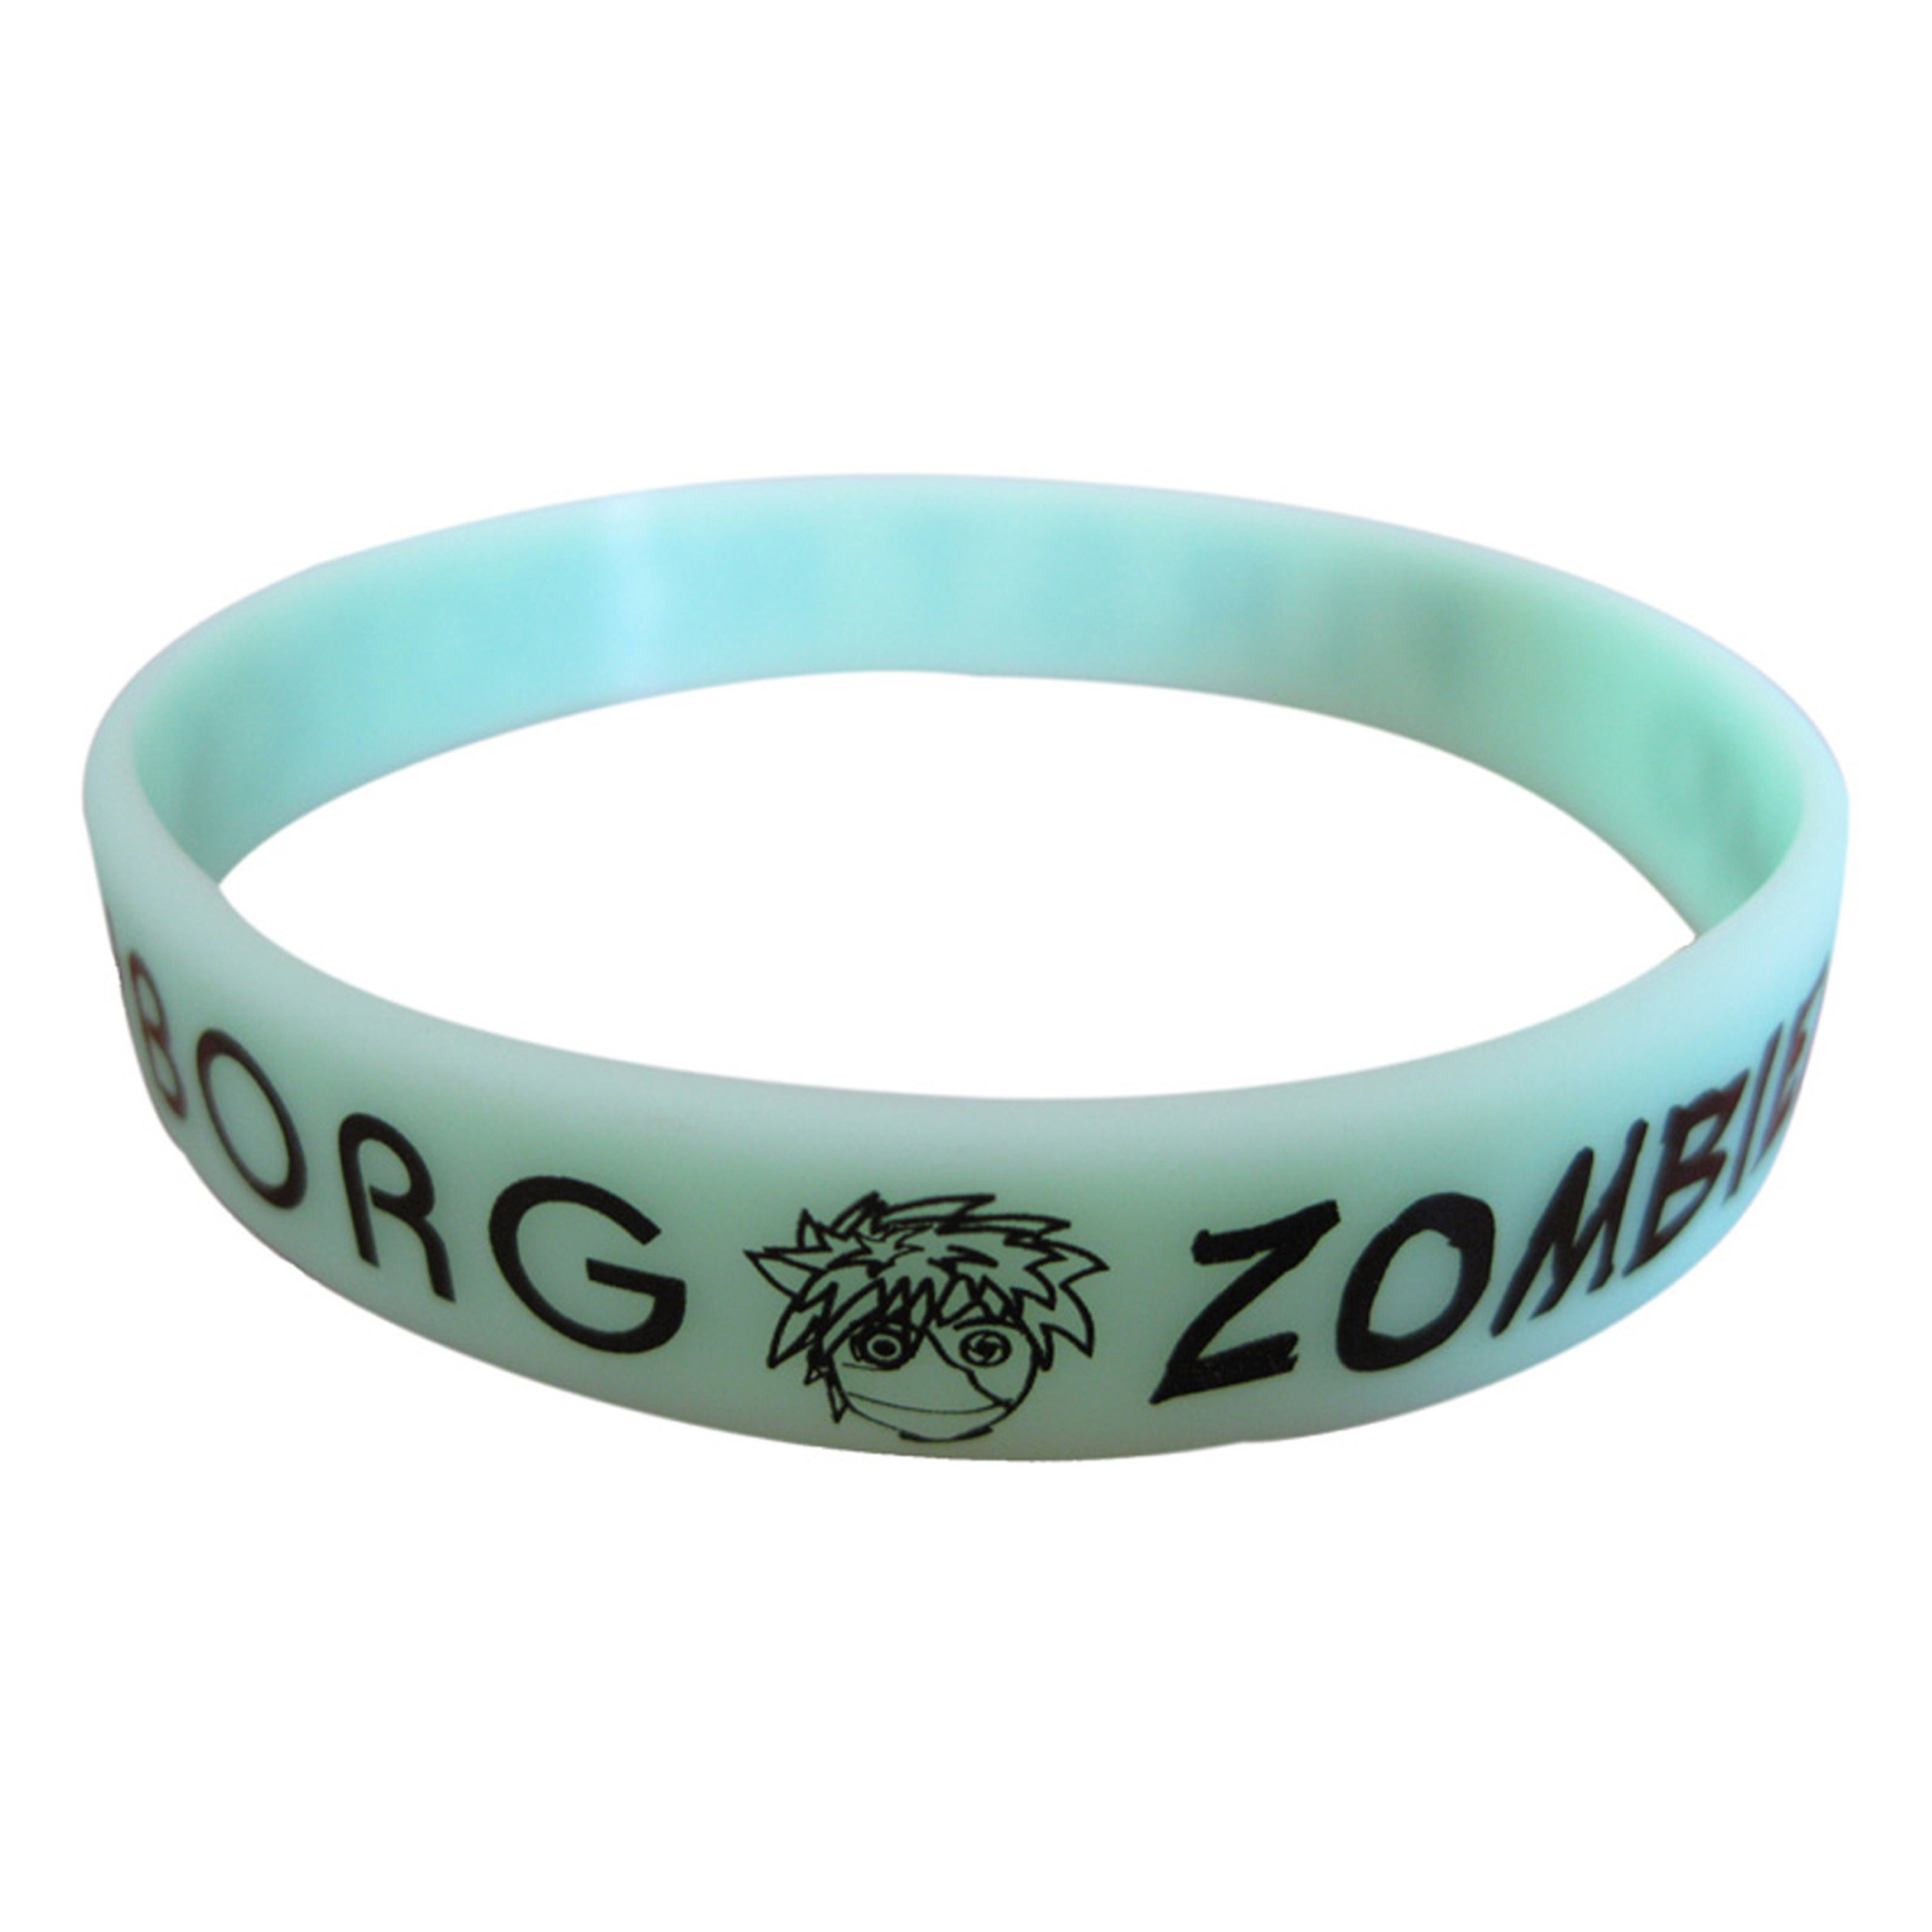 Newest Wristband Custom Silicone Rubber Bracelet